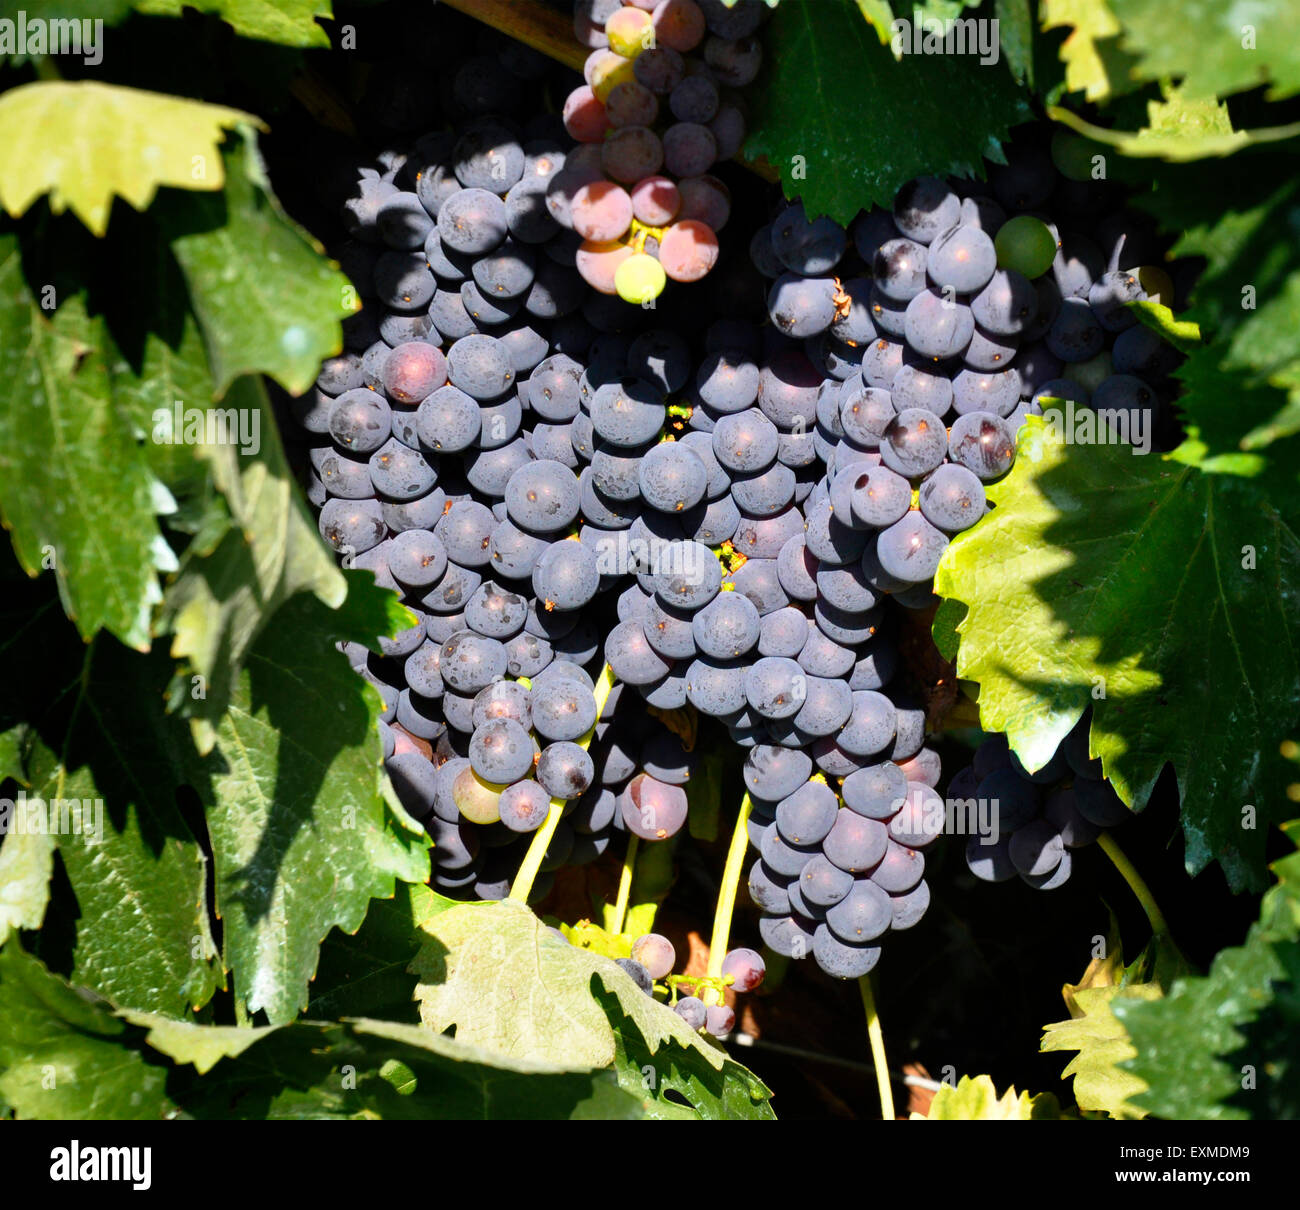 A bunch of grapes hanging on the vine - Stock Image